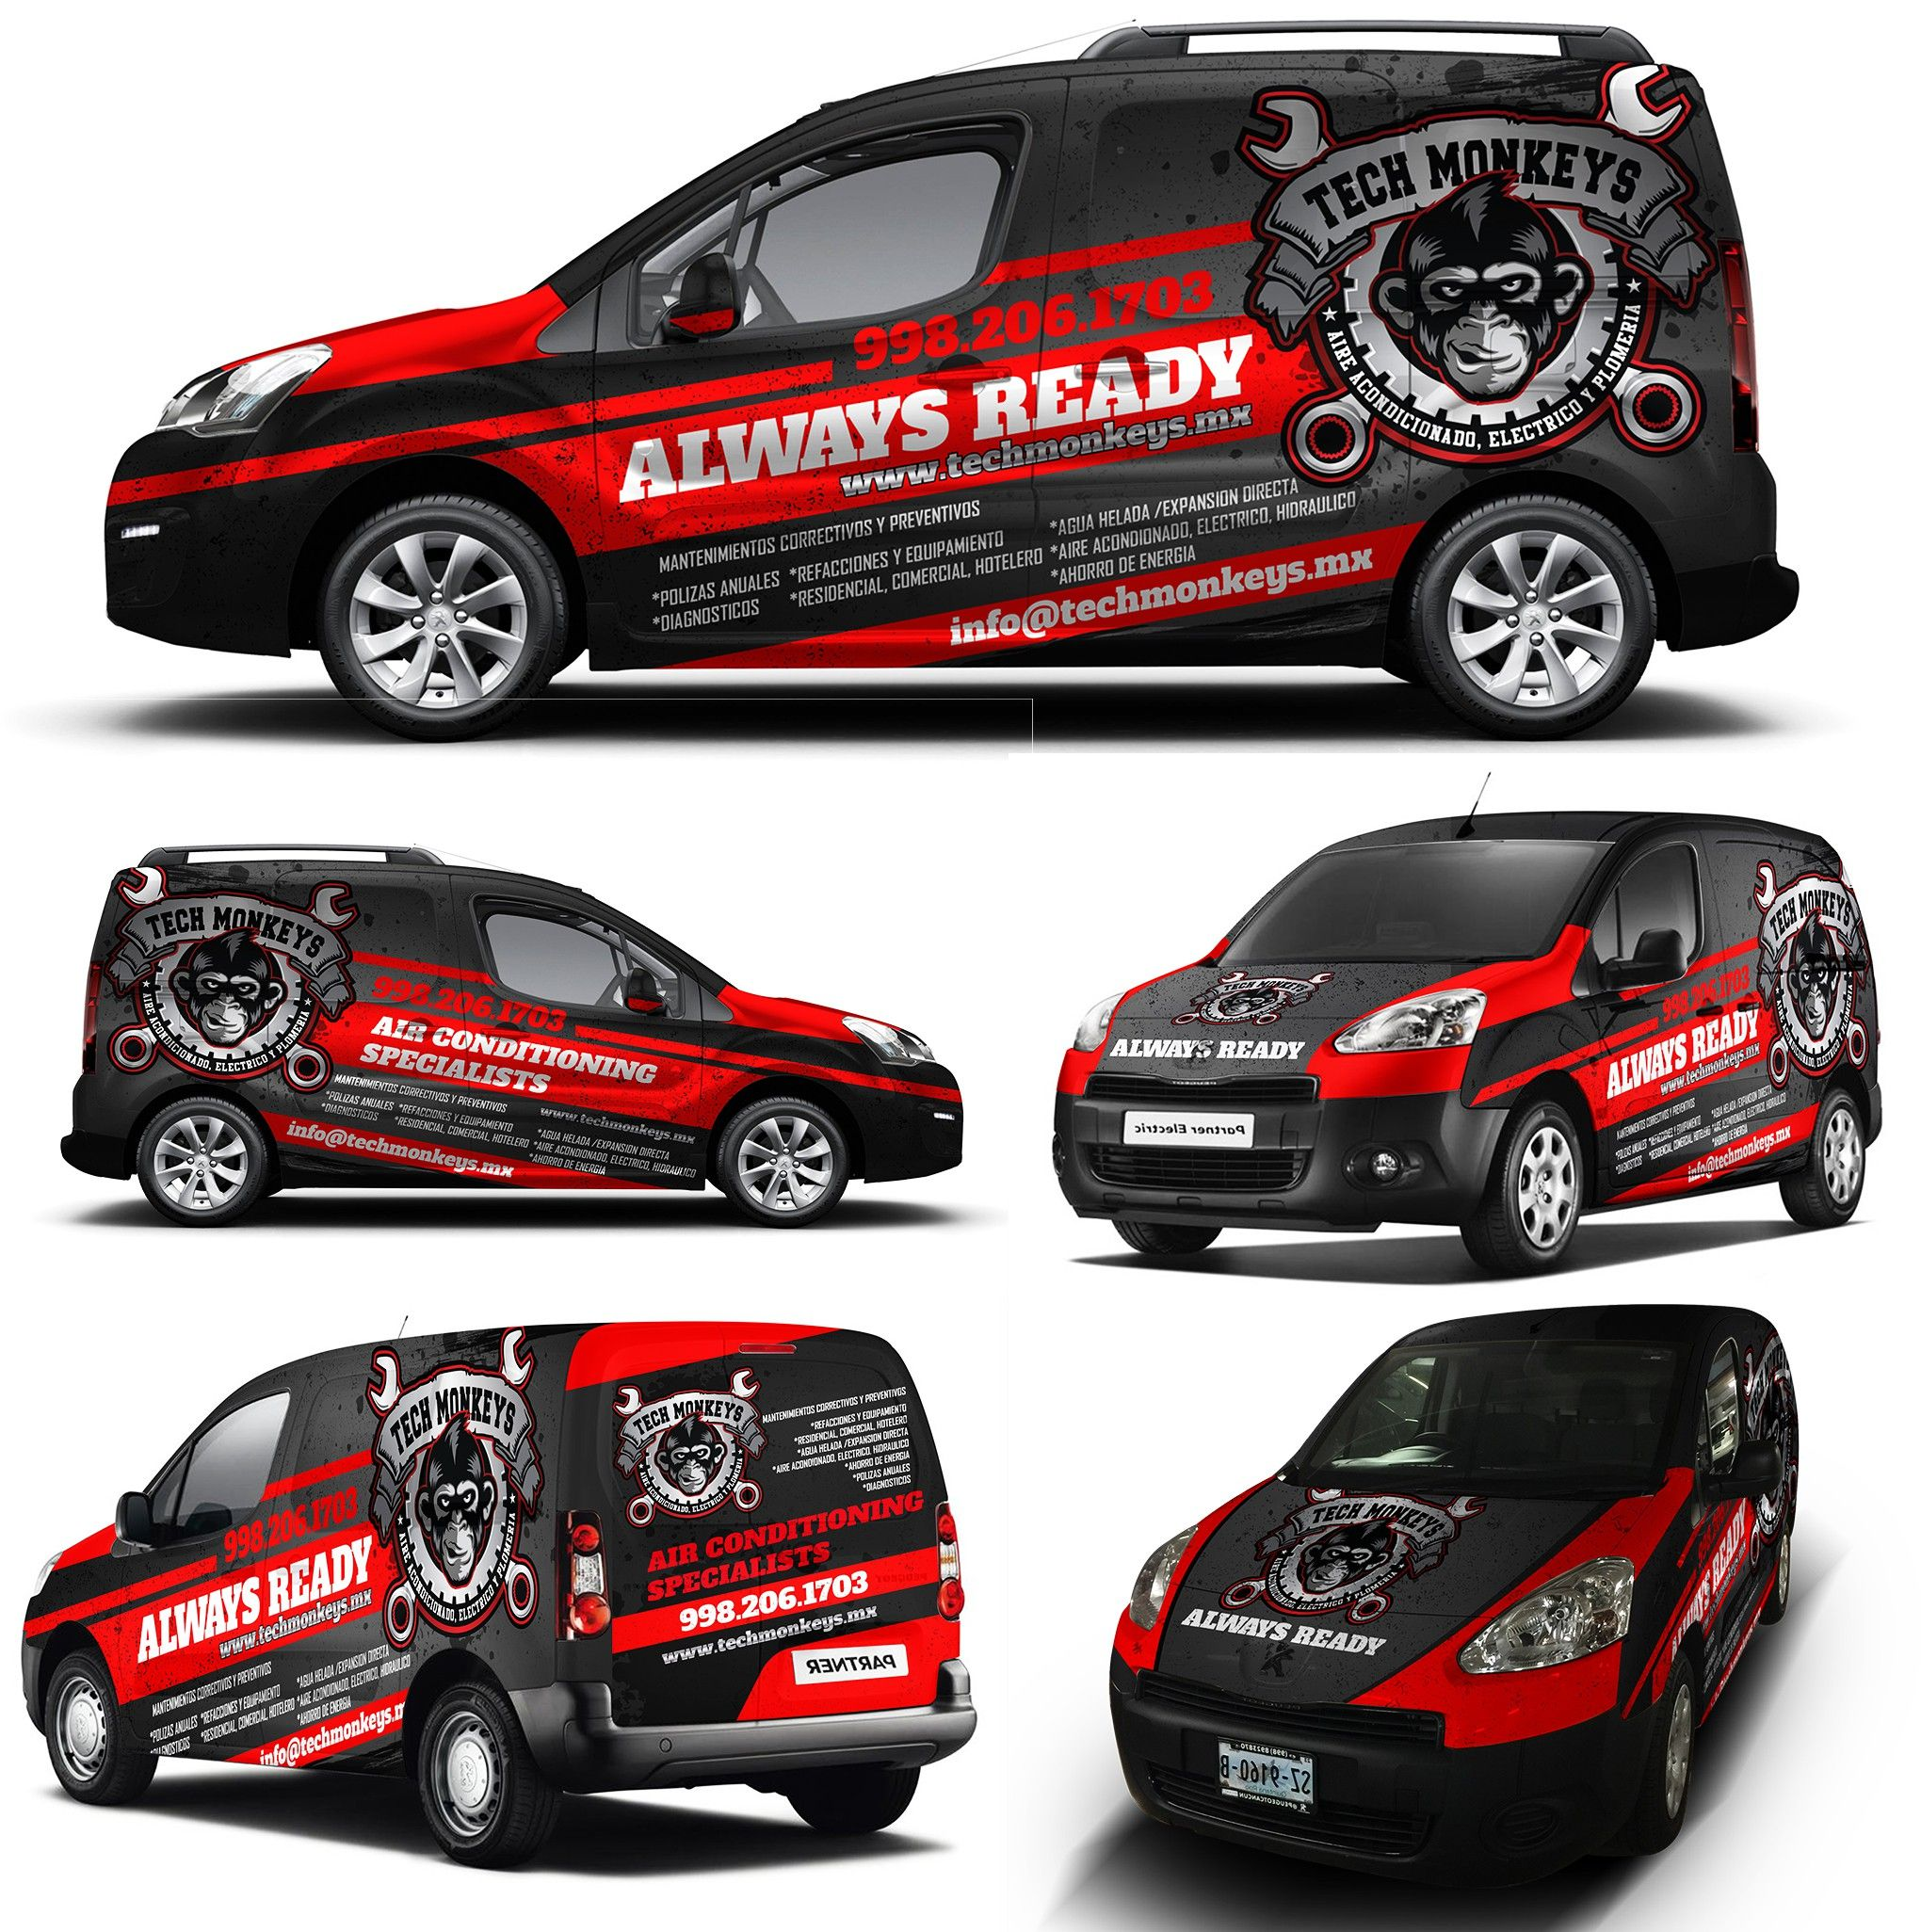 Ford tourneo courier pictures to pin on pinterest - Find This Pin And More On Vehicle Wraps By Jineshpb